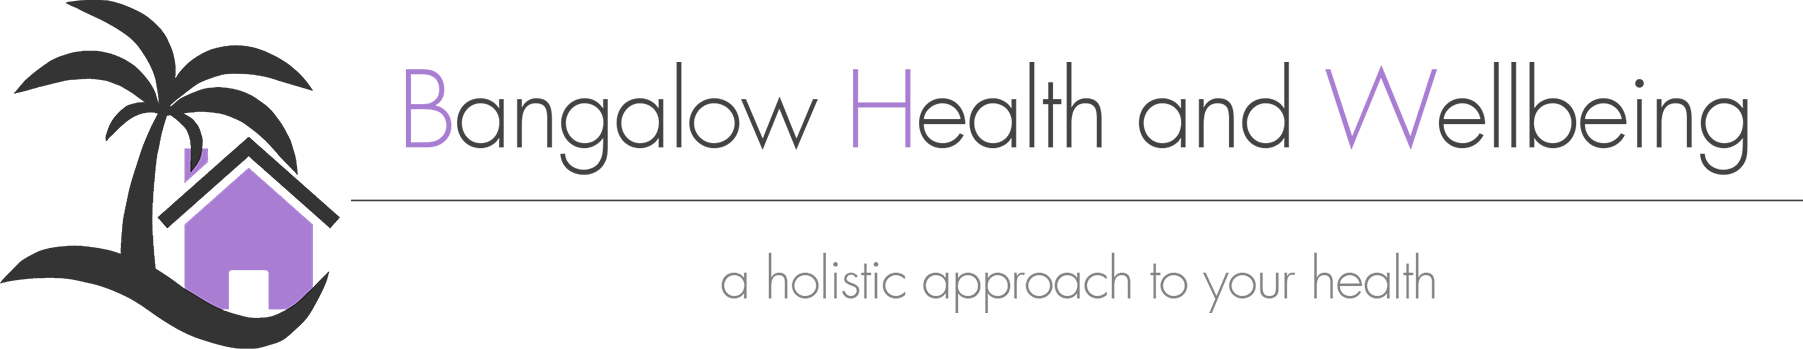 Bangalow Health and Wellbeing – A holistic approach to your